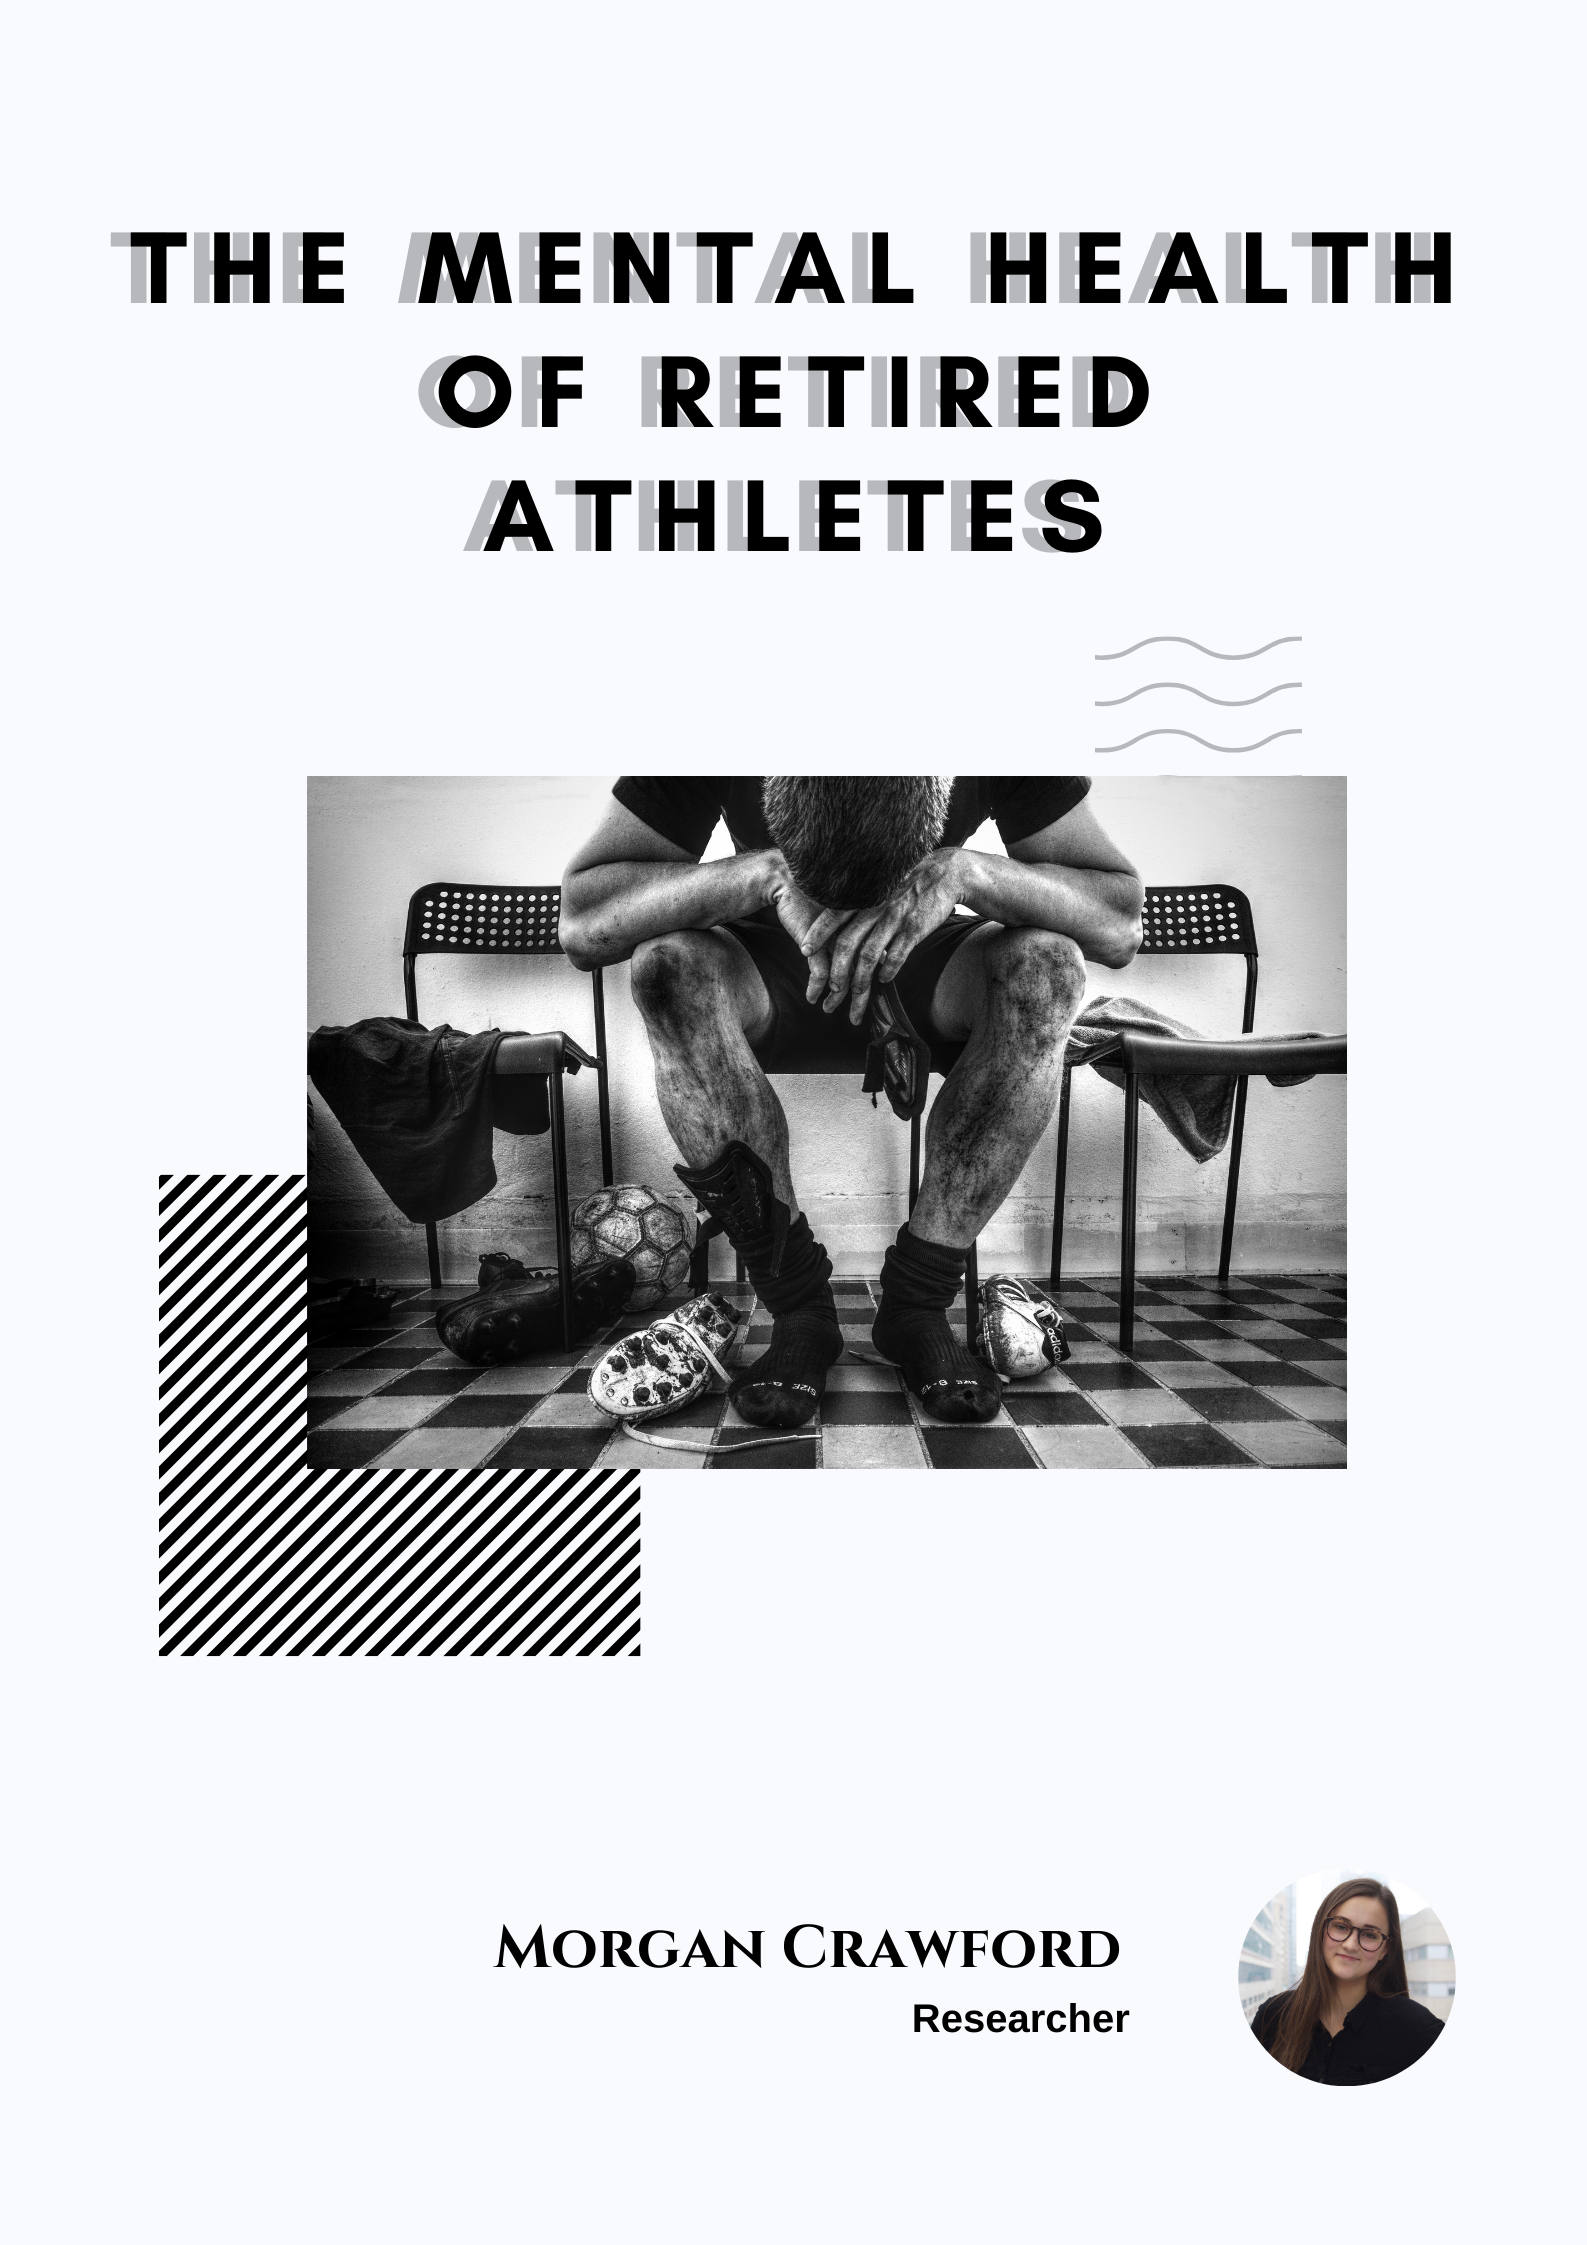 The Mental Health of Retired Athletes